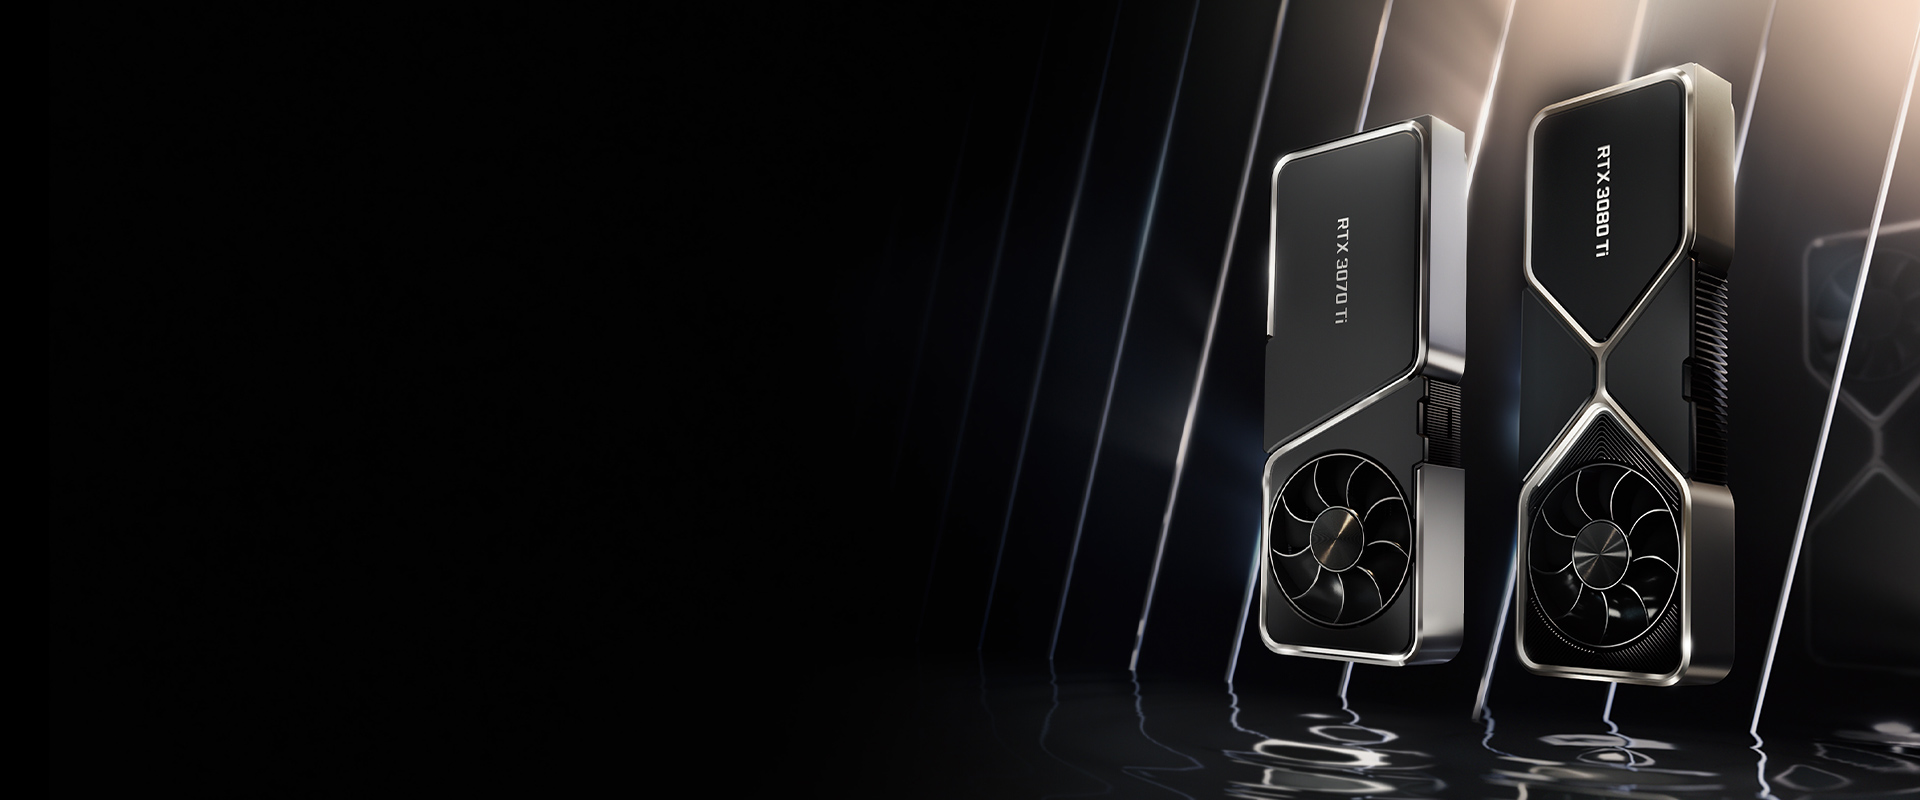 Get NVIDIA GeForce RTX 3070 Ti, GeForce RTX 3080 Ti, or 30 Series graphics card today!